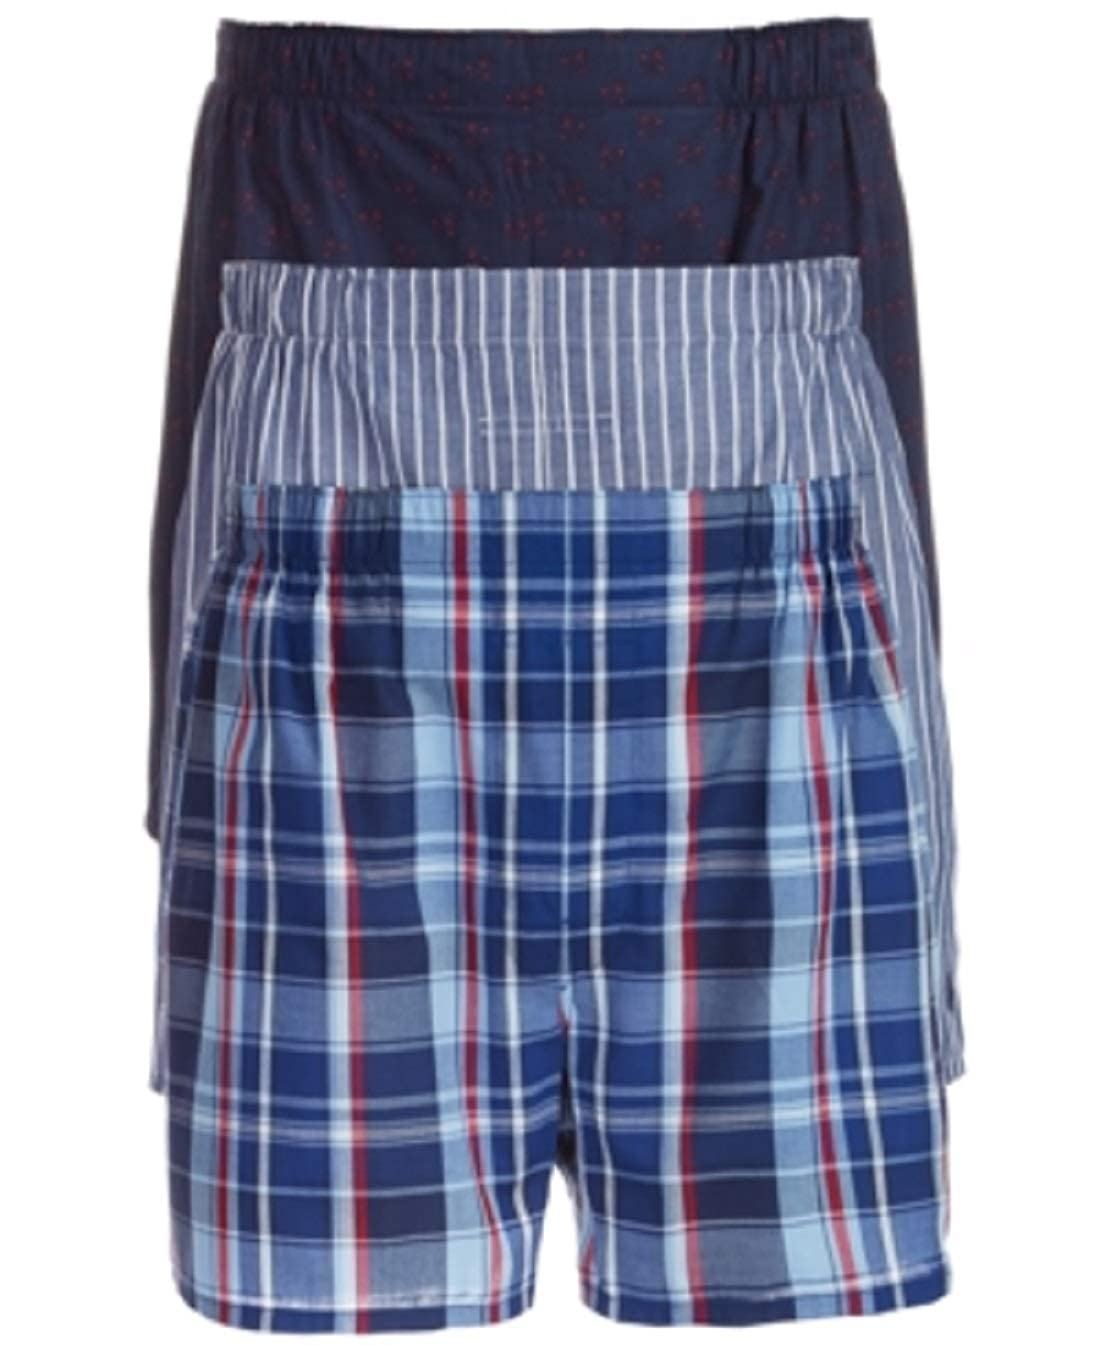 XL Nautical Assorted Polo Ralph Lauren Classic Fit Woven Boxers 3-Pack